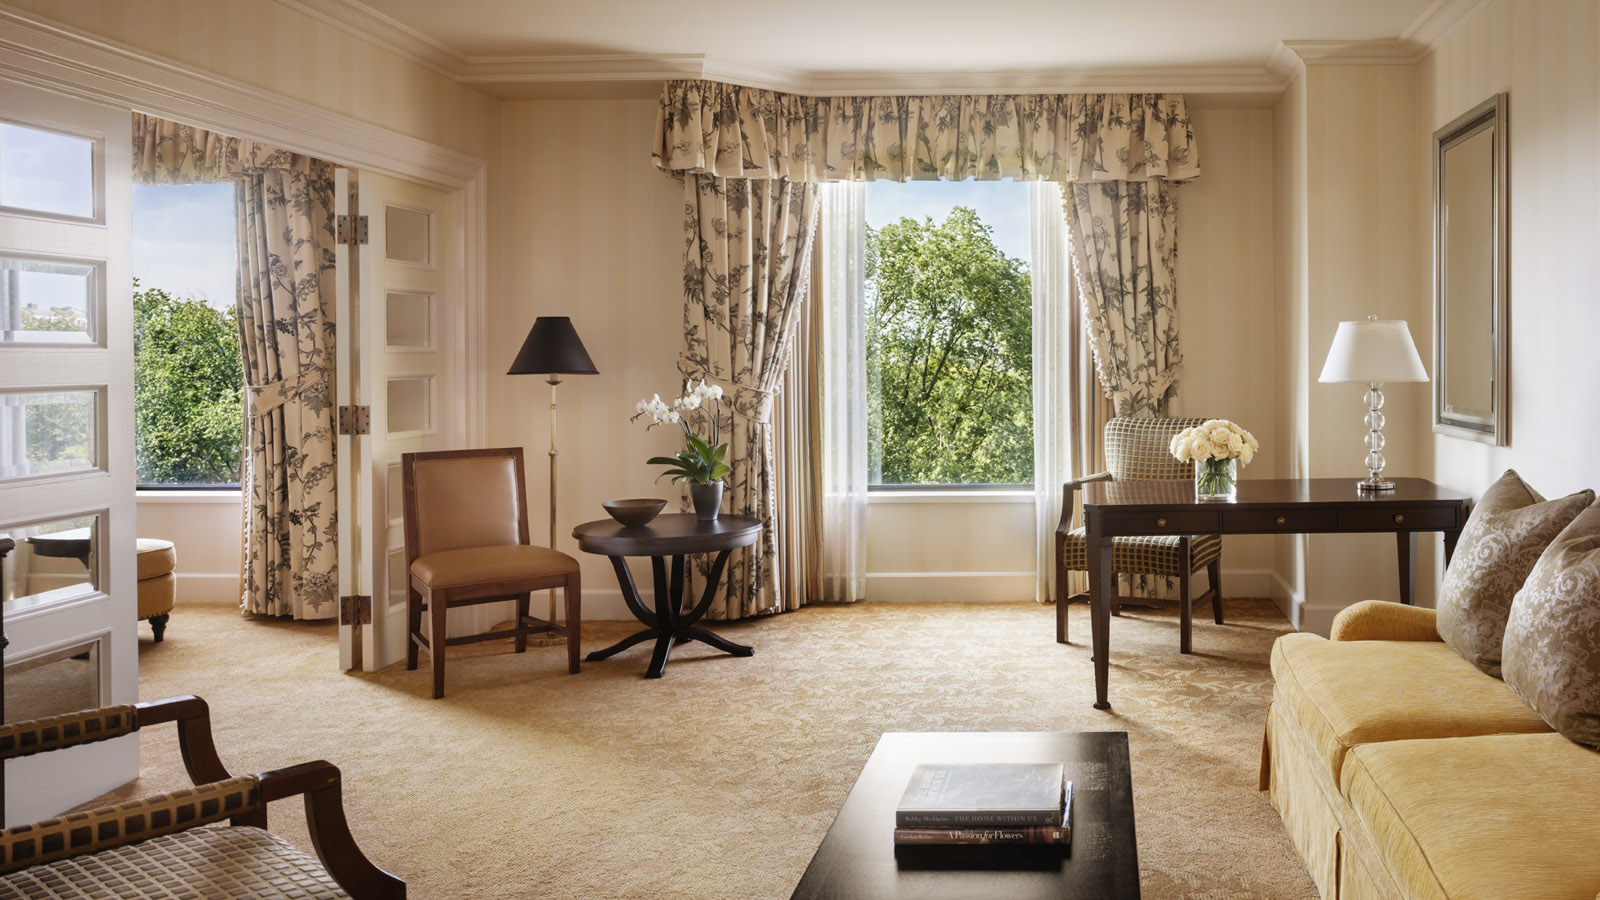 Garden-View Executive Suite at Four Seasons Hotel Boston